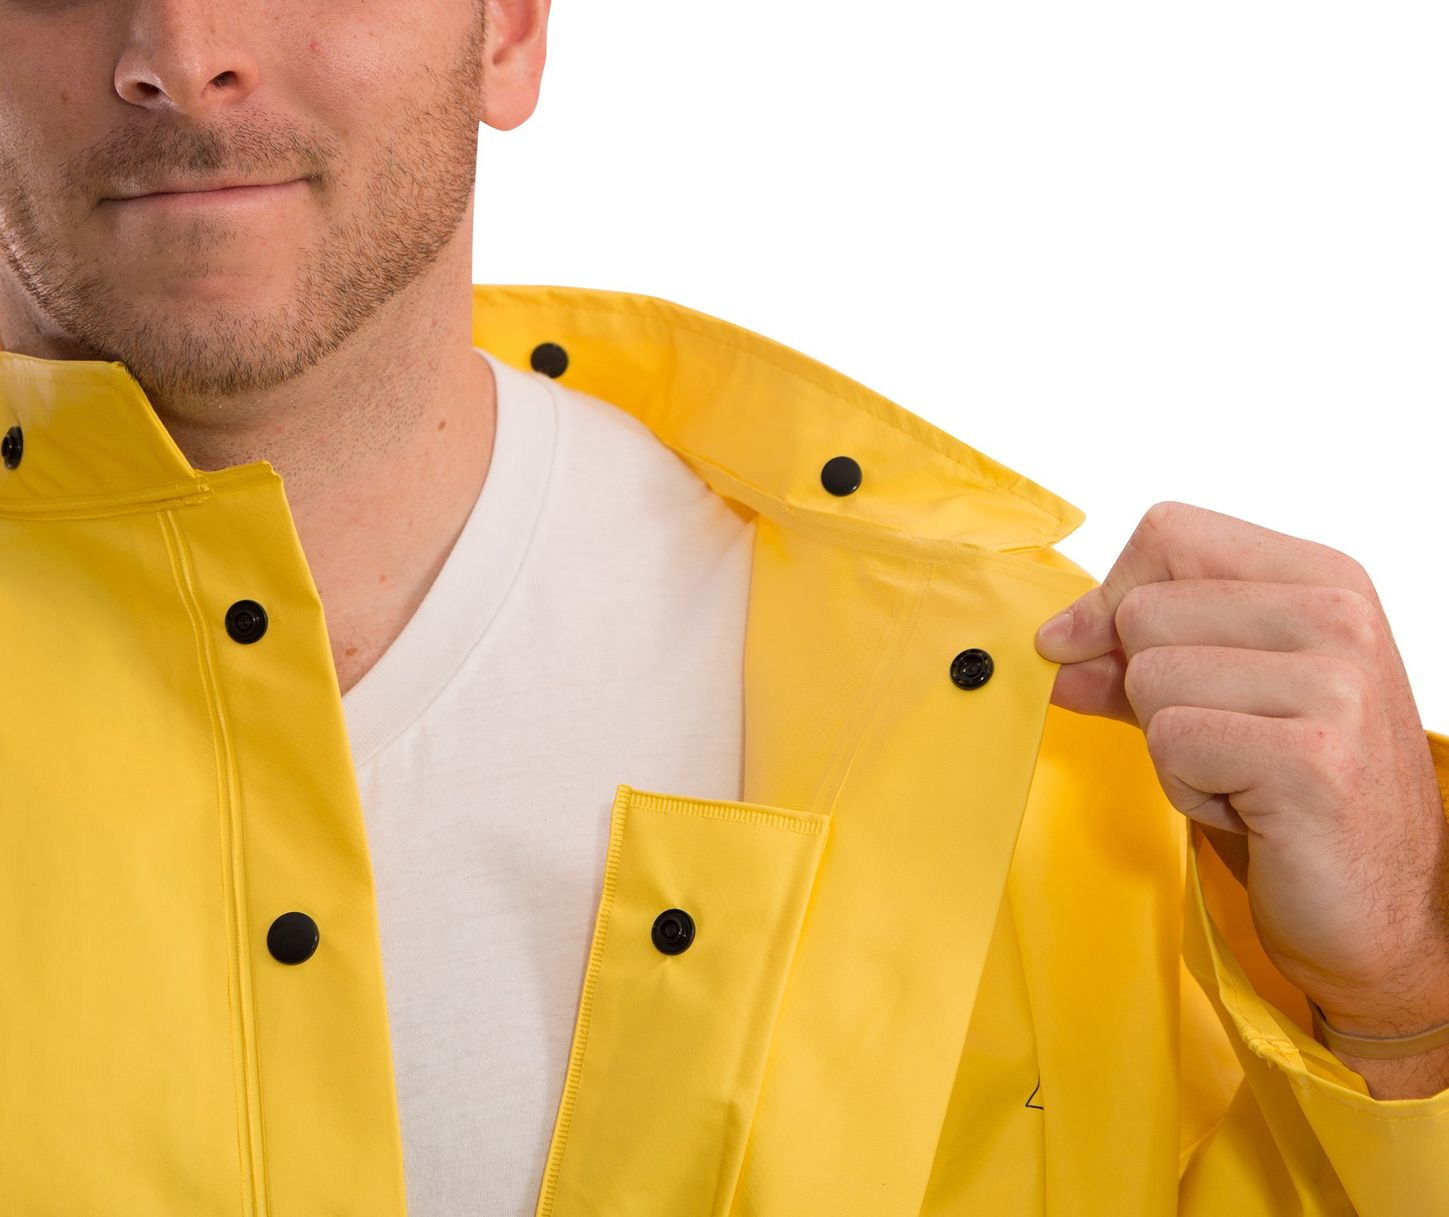 tingley-j56207-durascrim-fire-resistant-jacket-pvc-coated-chemical-resistant-with-hood-snaps-example.jpg